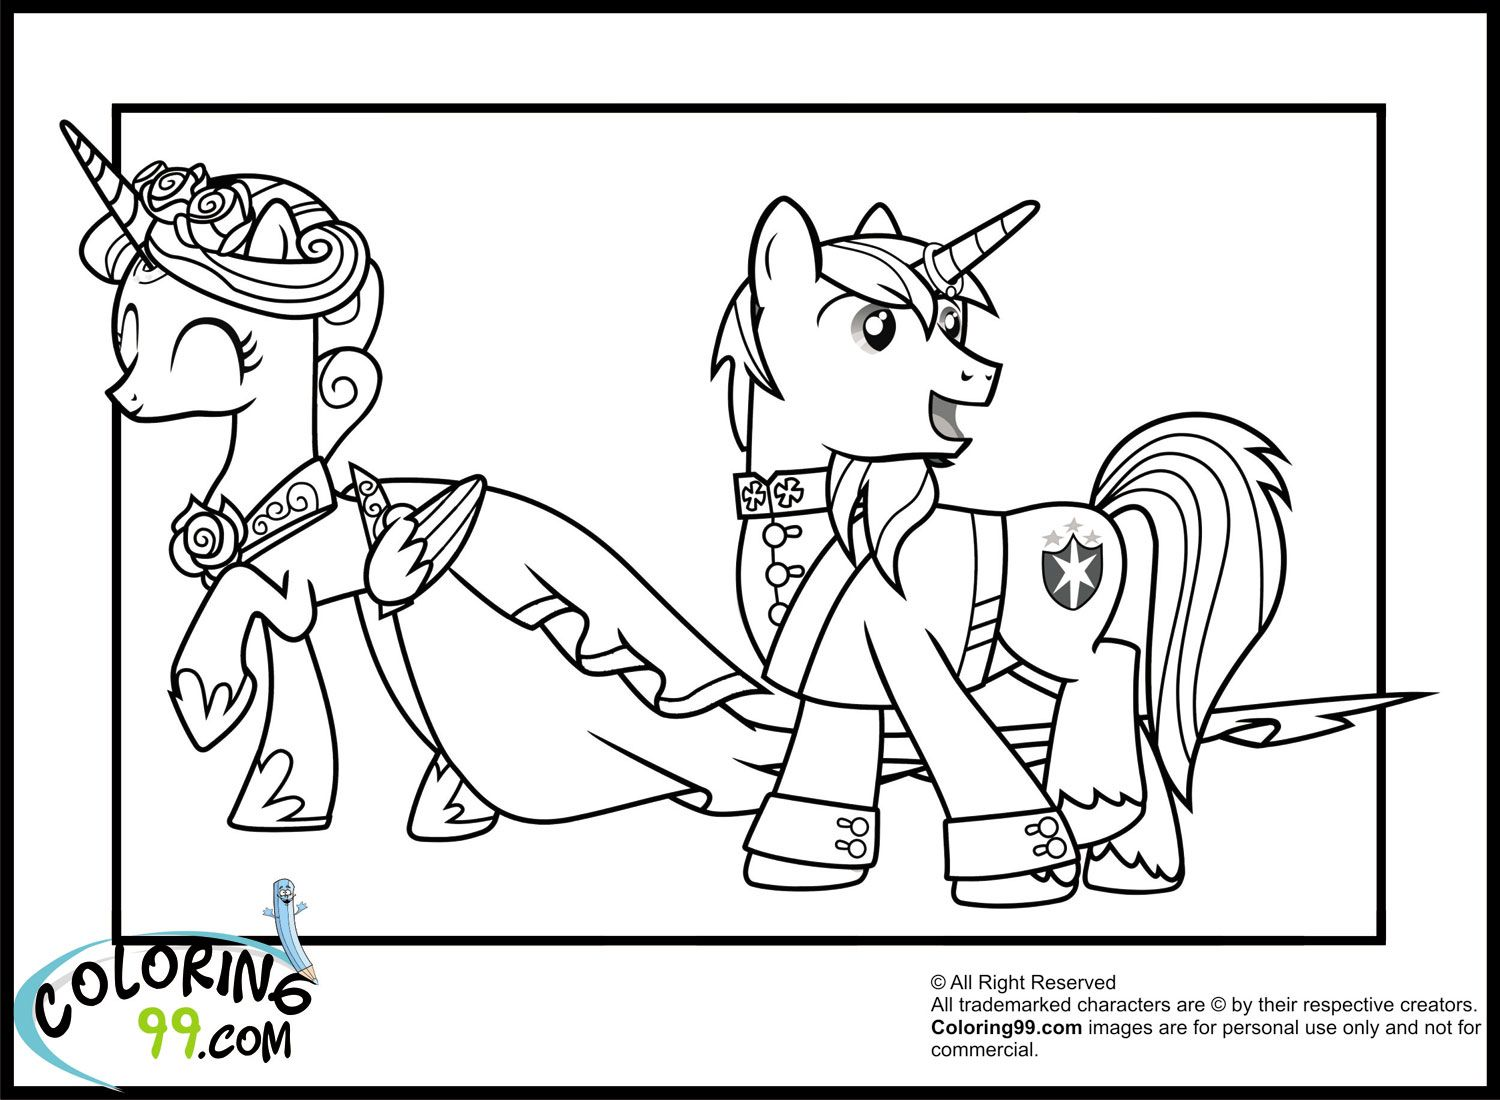 Princess Cadence Coloring Page Best Of My Little Pony Coloring Pages Princess Cadence Wedd Princess Coloring Pages My Little Pony Coloring Horse Coloring Pages